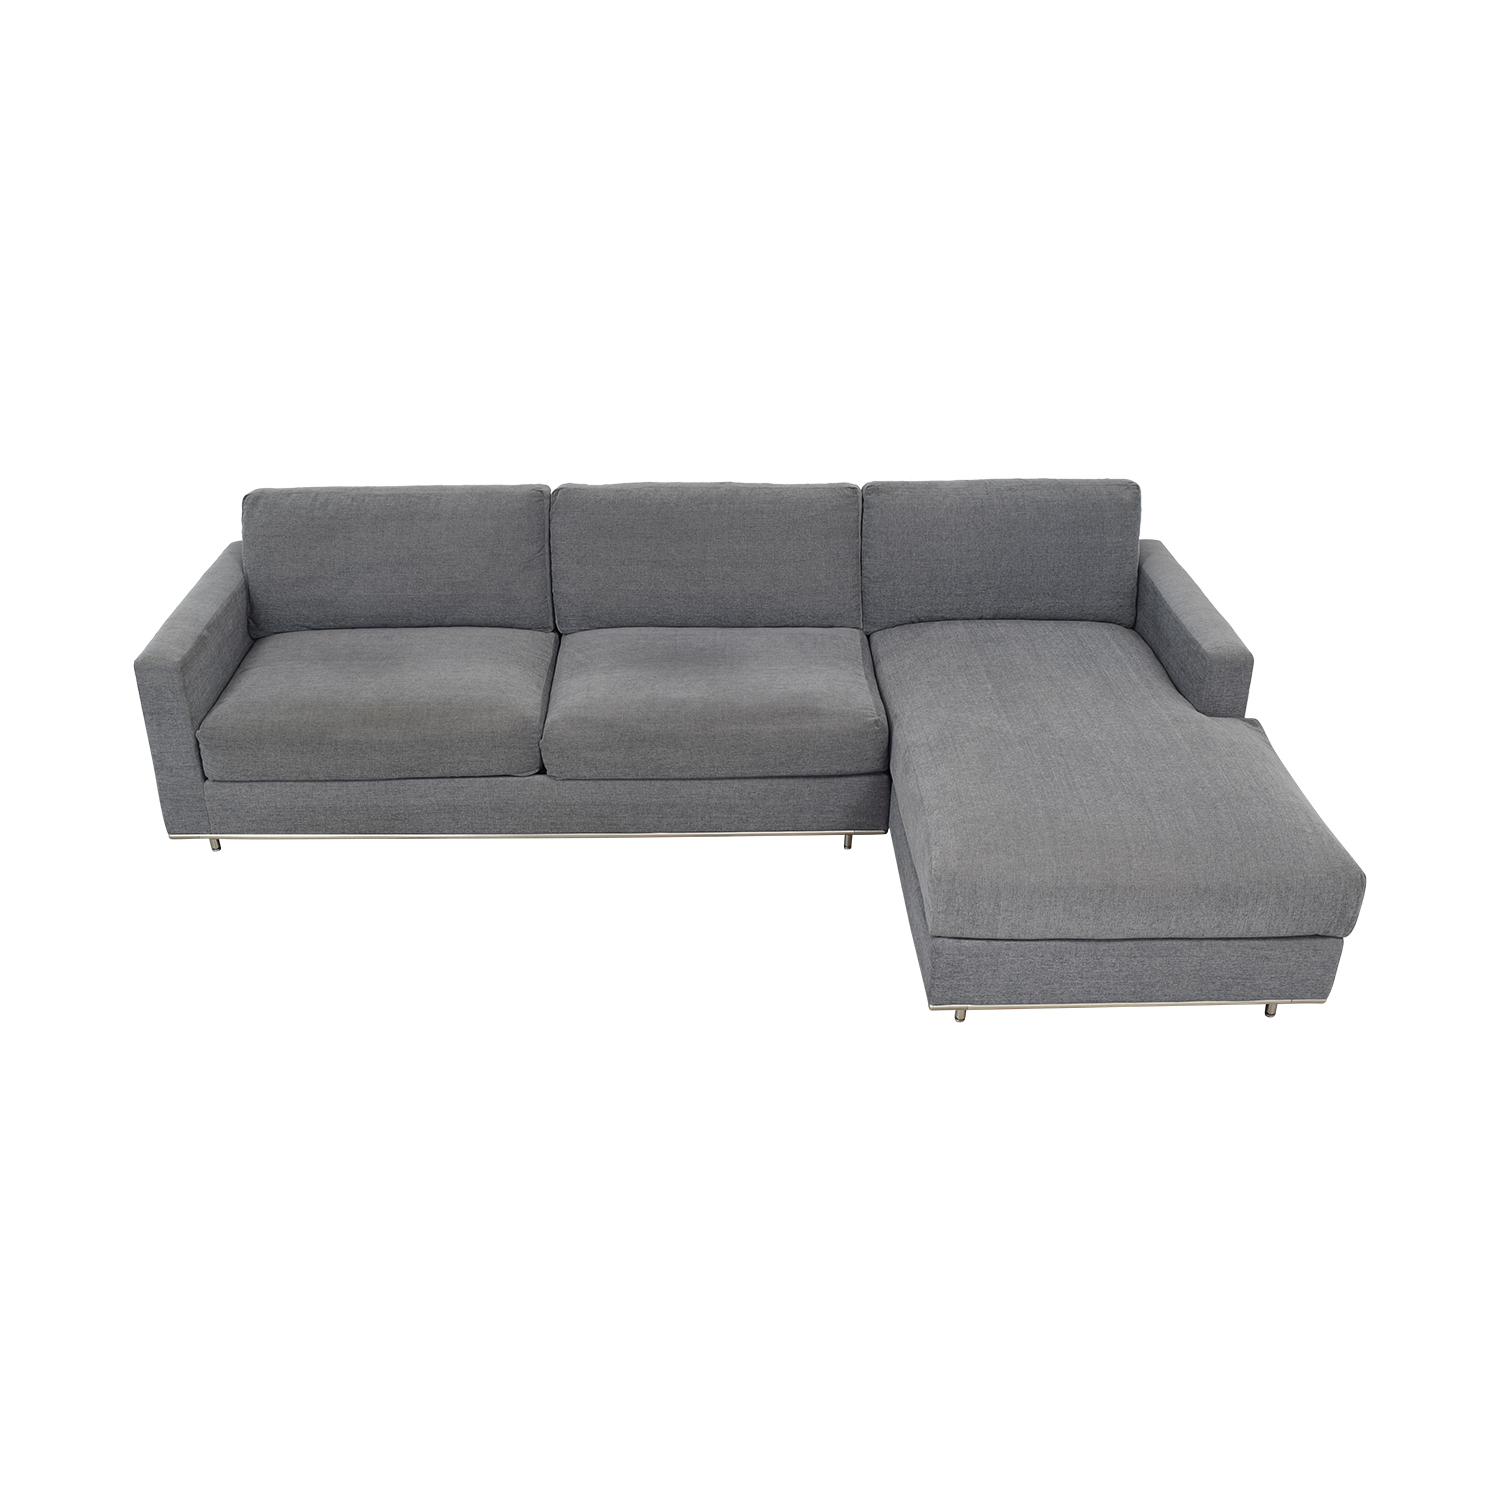 Weiman Weiman Sectional Sofa with Chaise dimensions